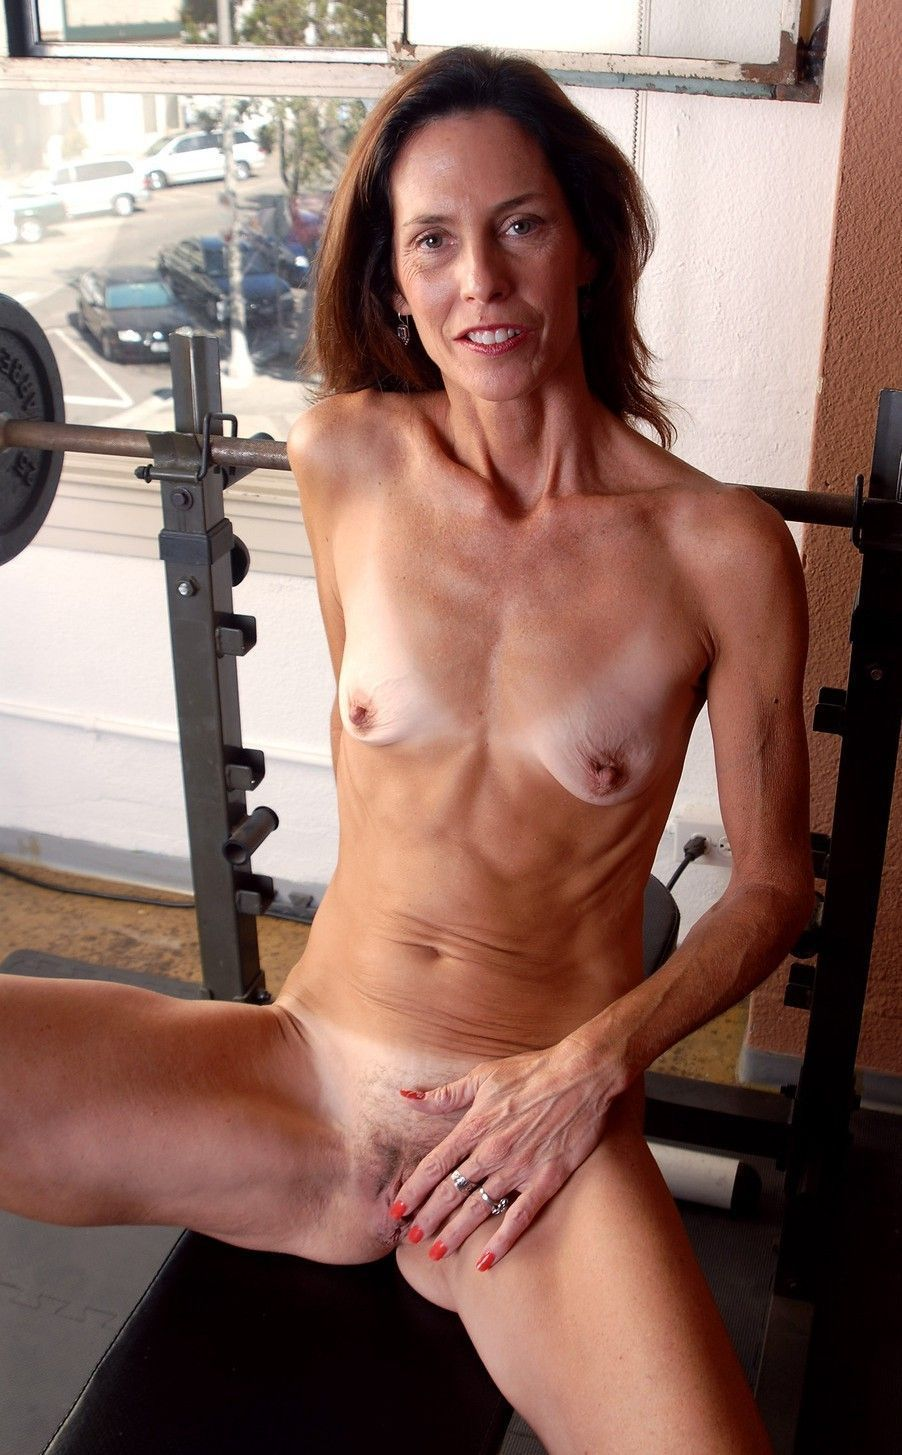 Mom video pussy galleries